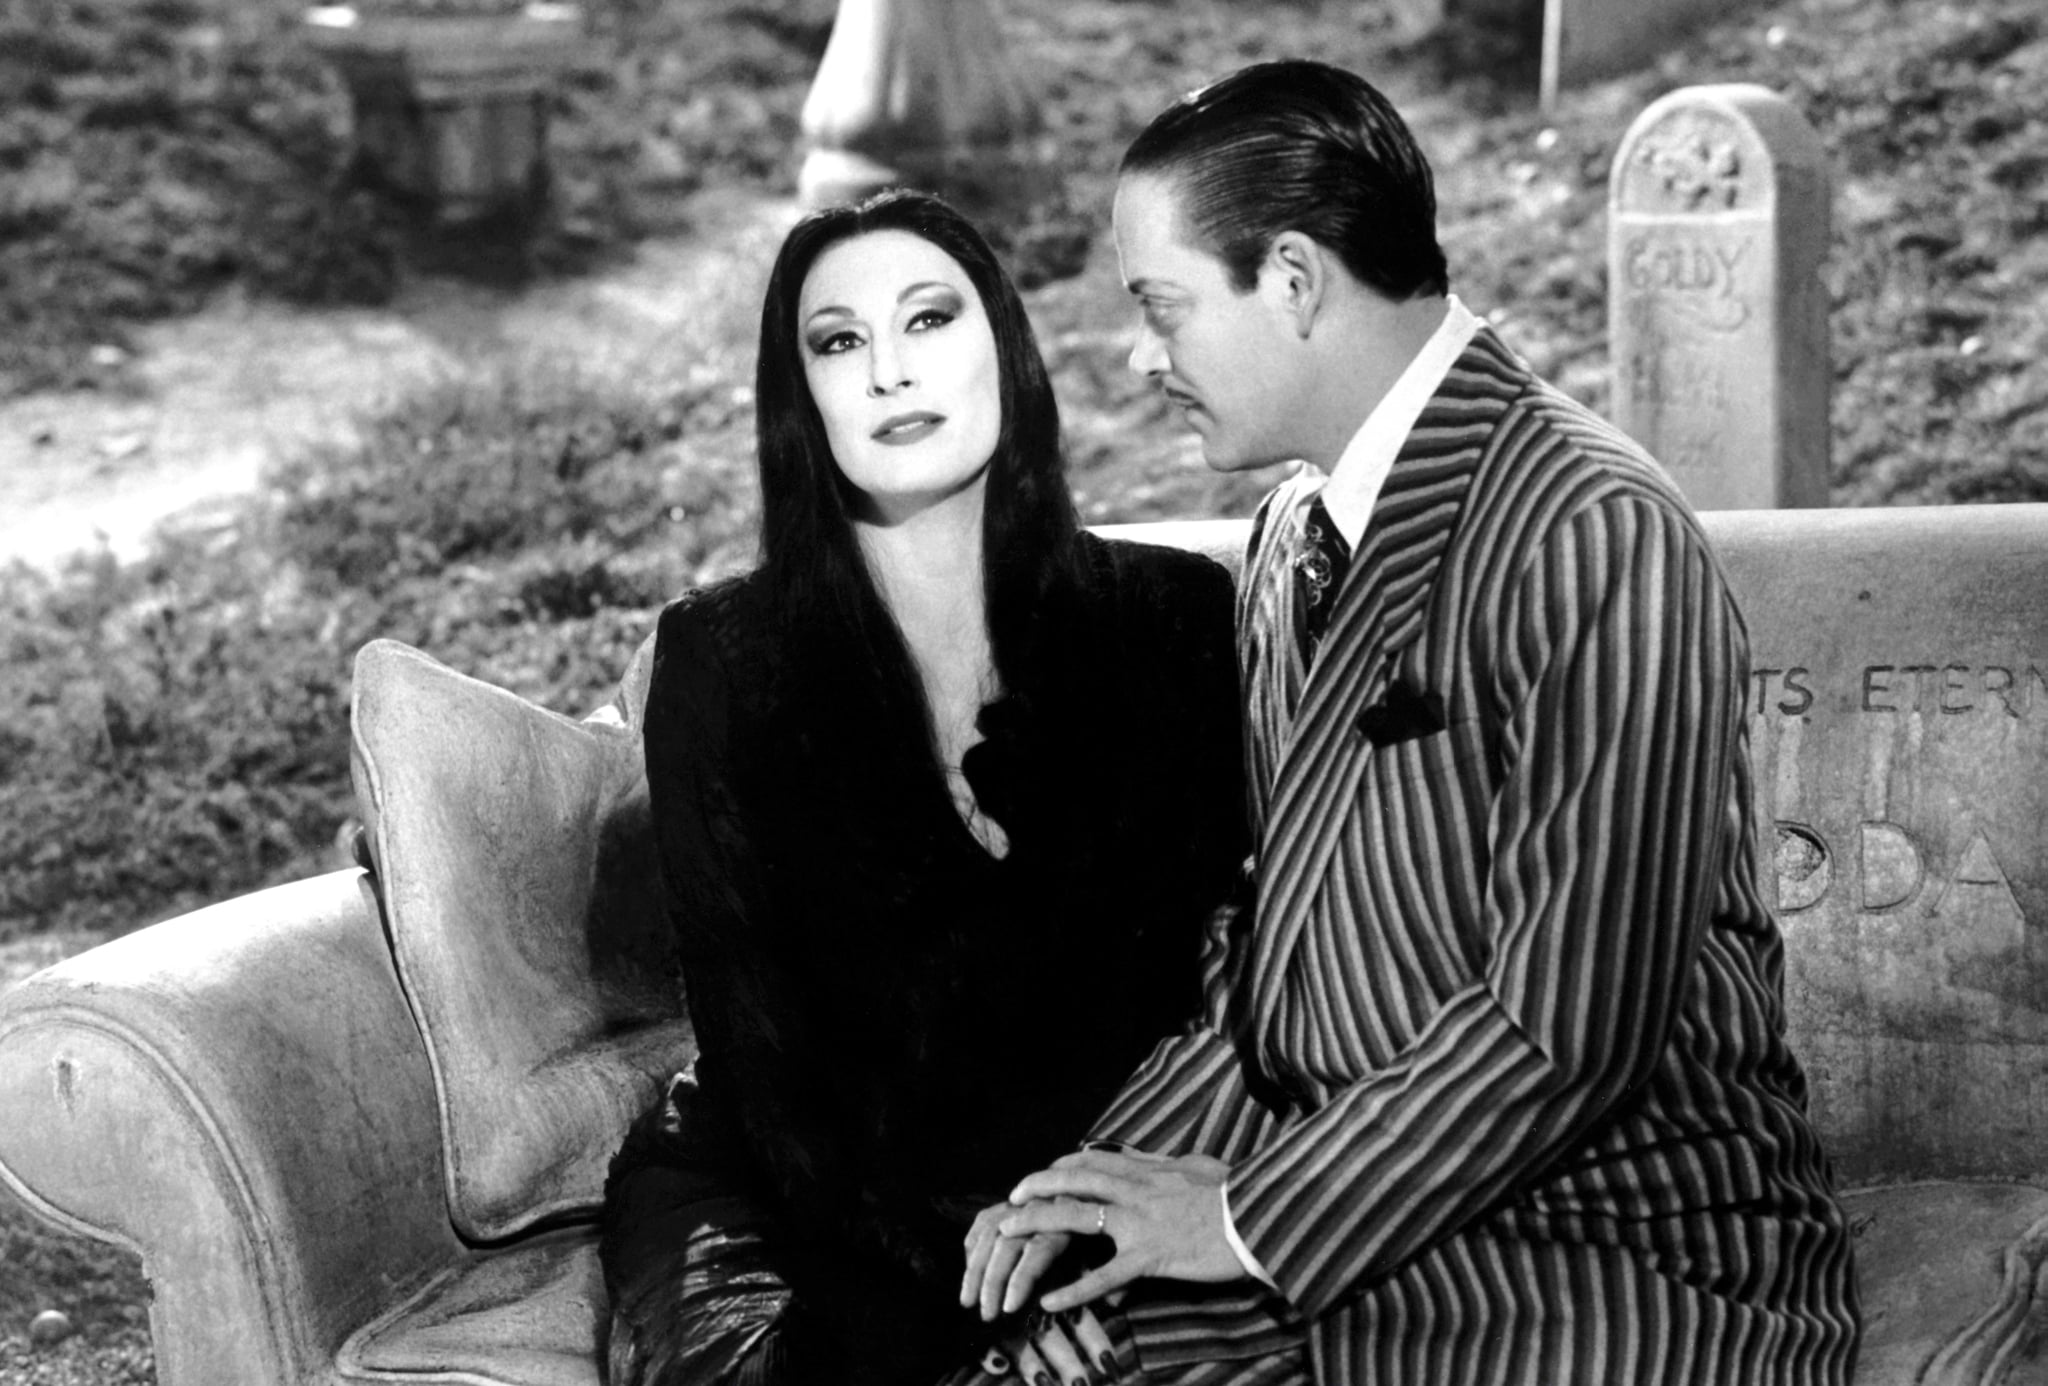 THE ADDAMS FAMILY, from left, Anjelica Huston, Raul Julia, 1991, Paramount/courtesy Everett Collection